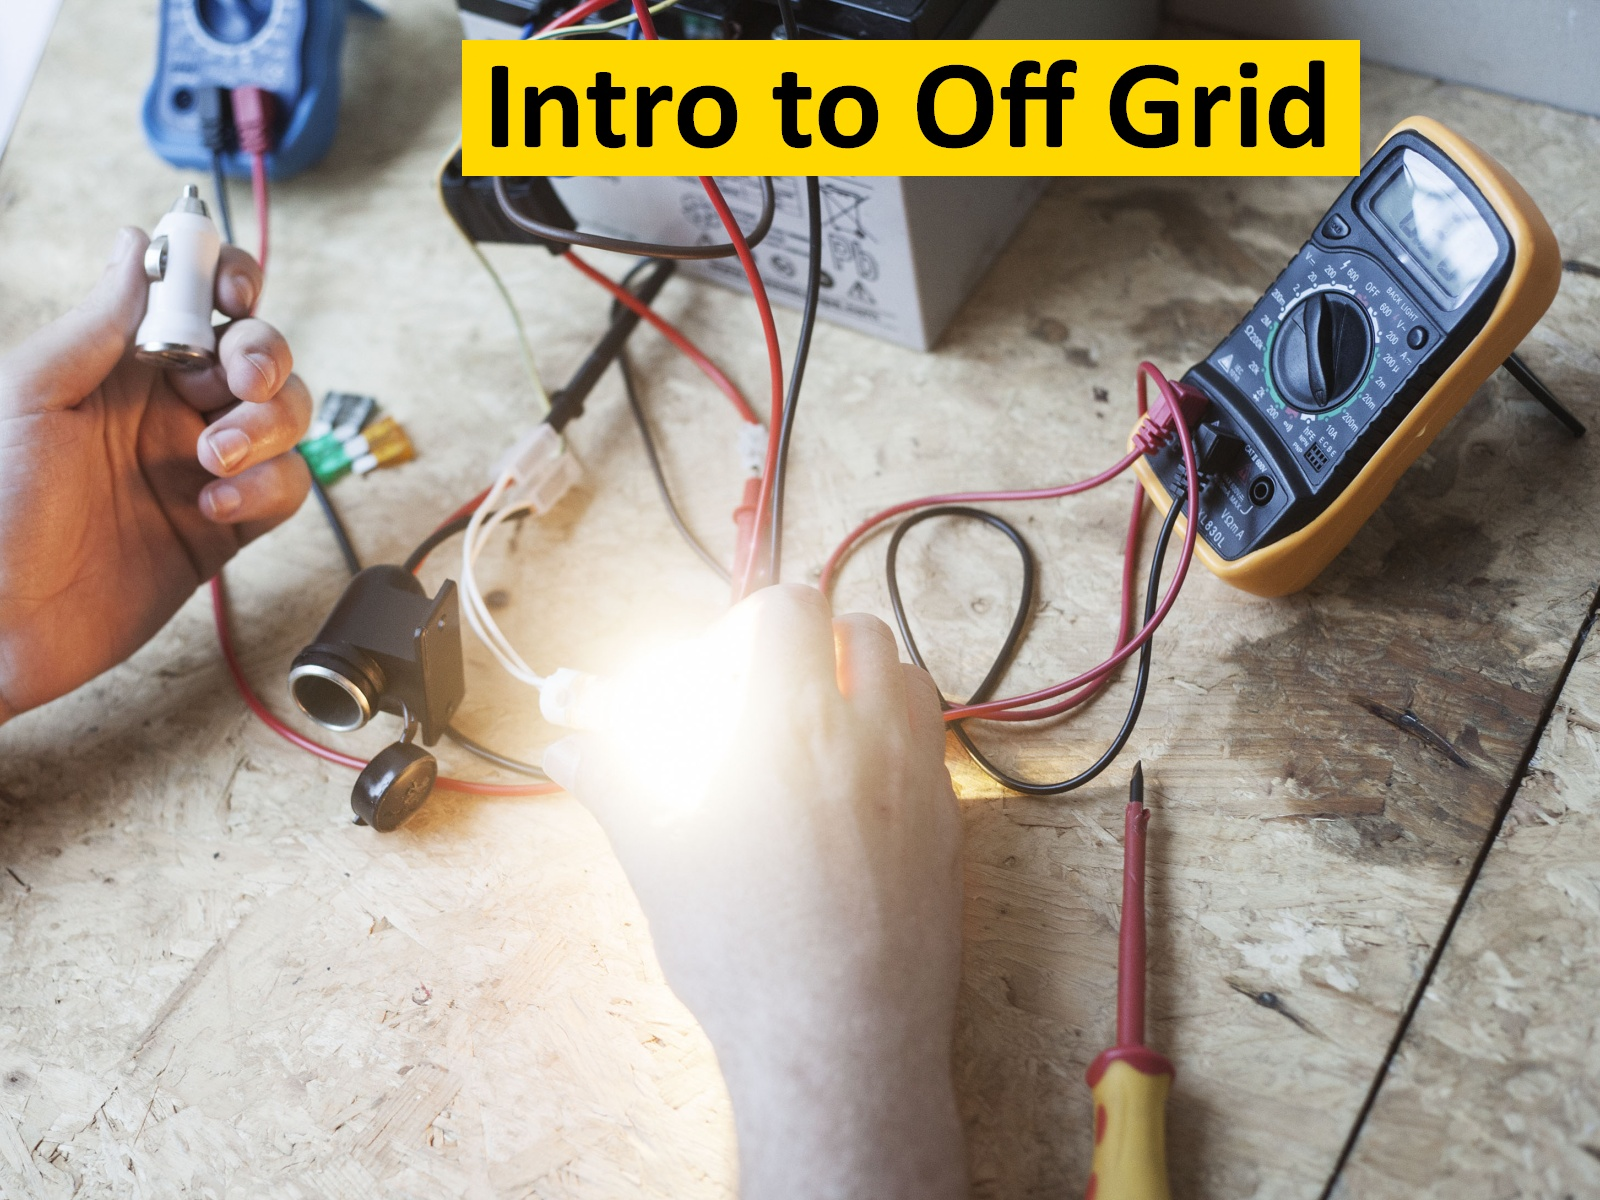 Introduction to off grid energy -